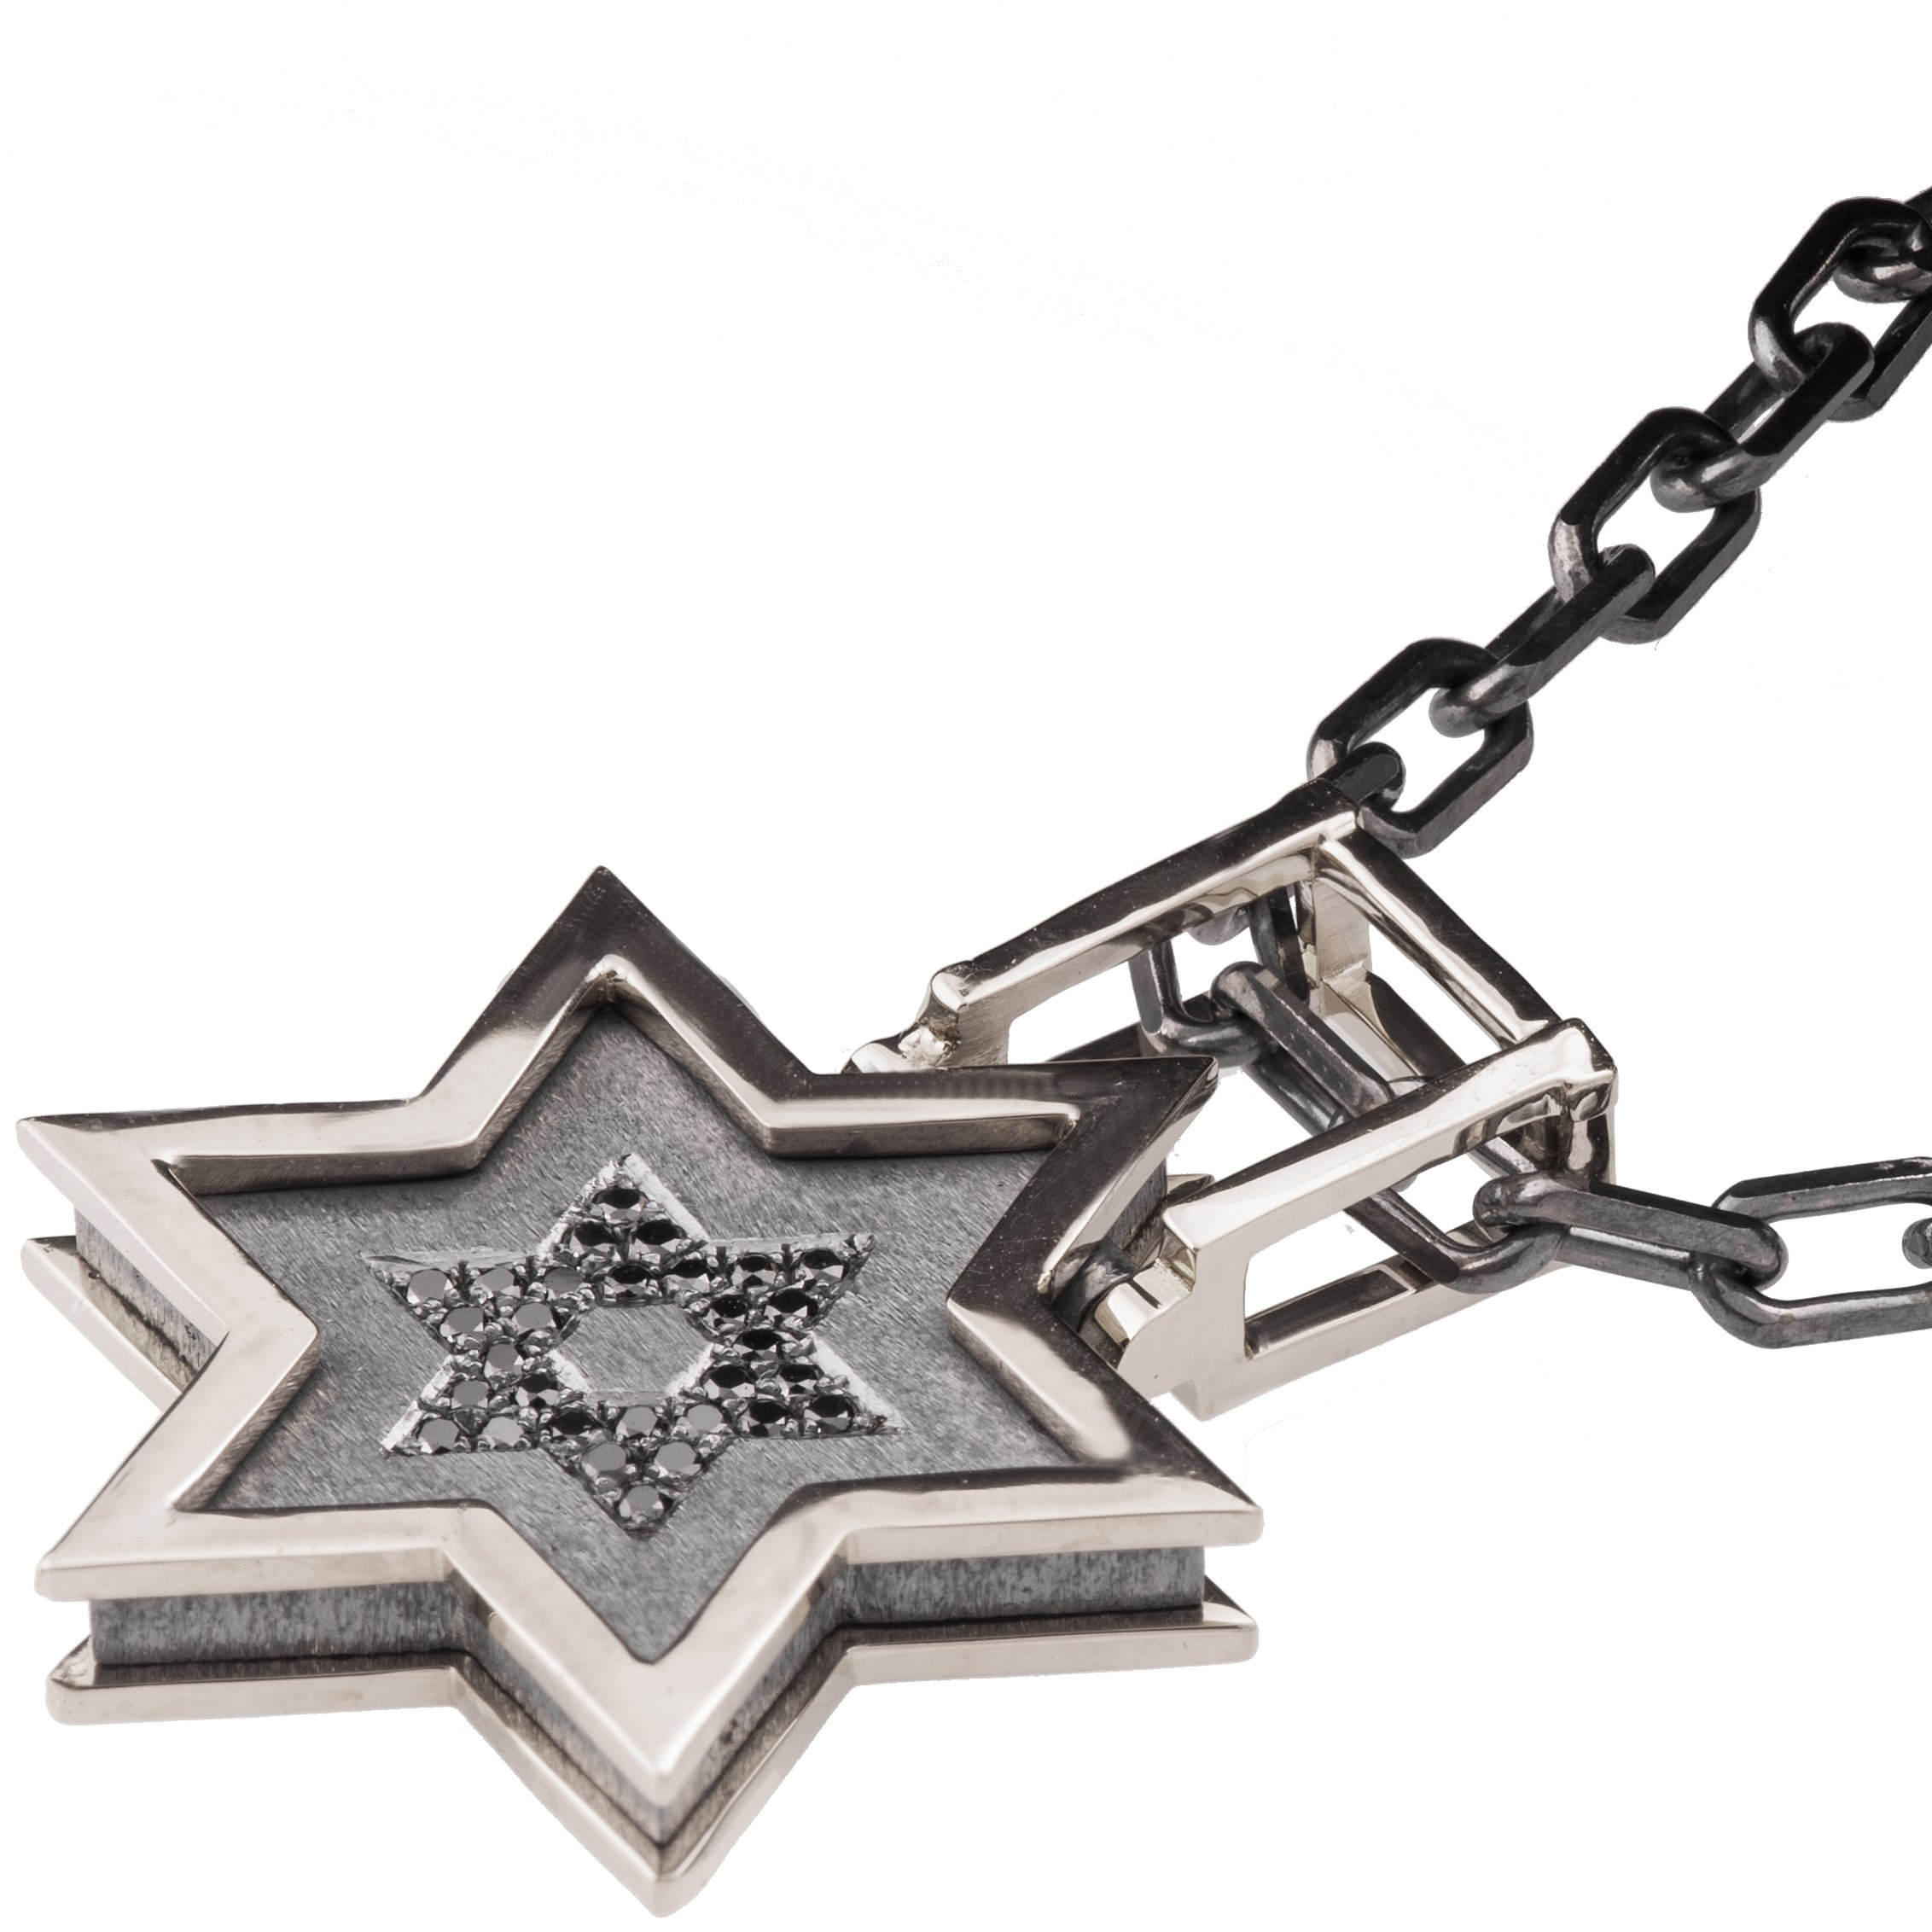 Solid 18K Rose Gold and Black Diamonds Star of David Pendant For Men Pave Necklace Black Two Tone David Shield Kabbalah Judaica Steampunk Chain